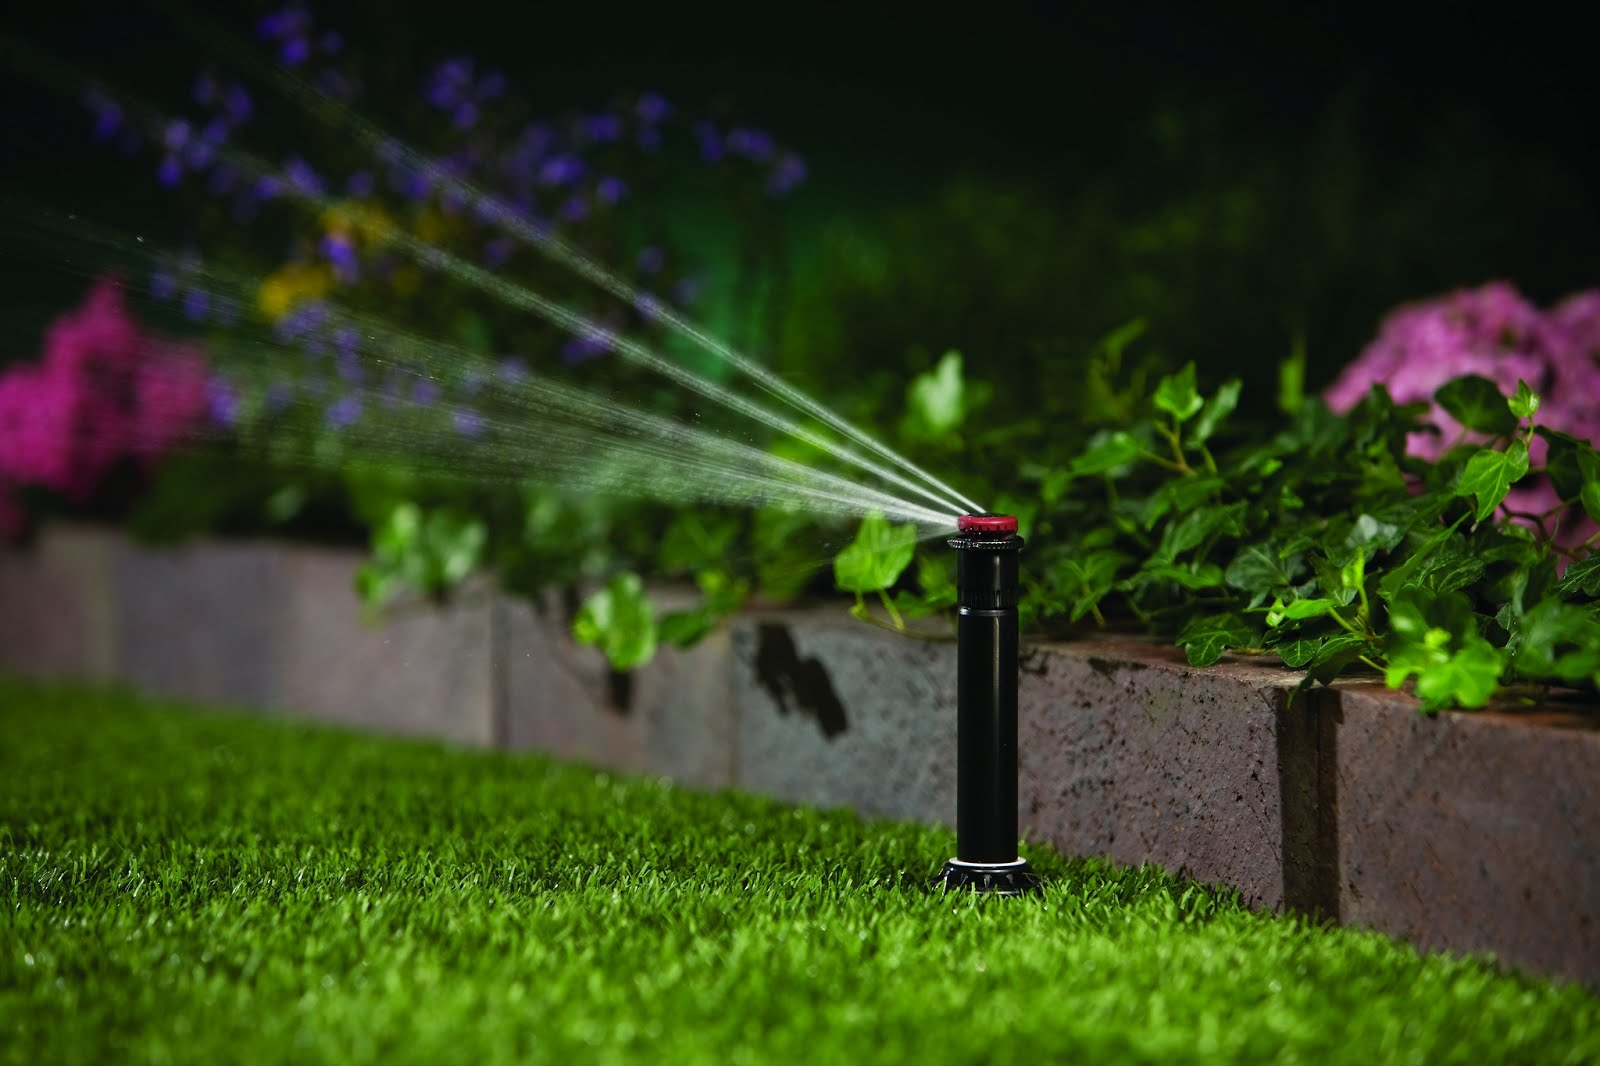 Sprinkler Services-Mesquite TX Professional Landscapers & Outdoor Living Designs-We offer Landscape Design, Outdoor Patios & Pergolas, Outdoor Living Spaces, Stonescapes, Residential & Commercial Landscaping, Irrigation Installation & Repairs, Drainage Systems, Landscape Lighting, Outdoor Living Spaces, Tree Service, Lawn Service, and more.